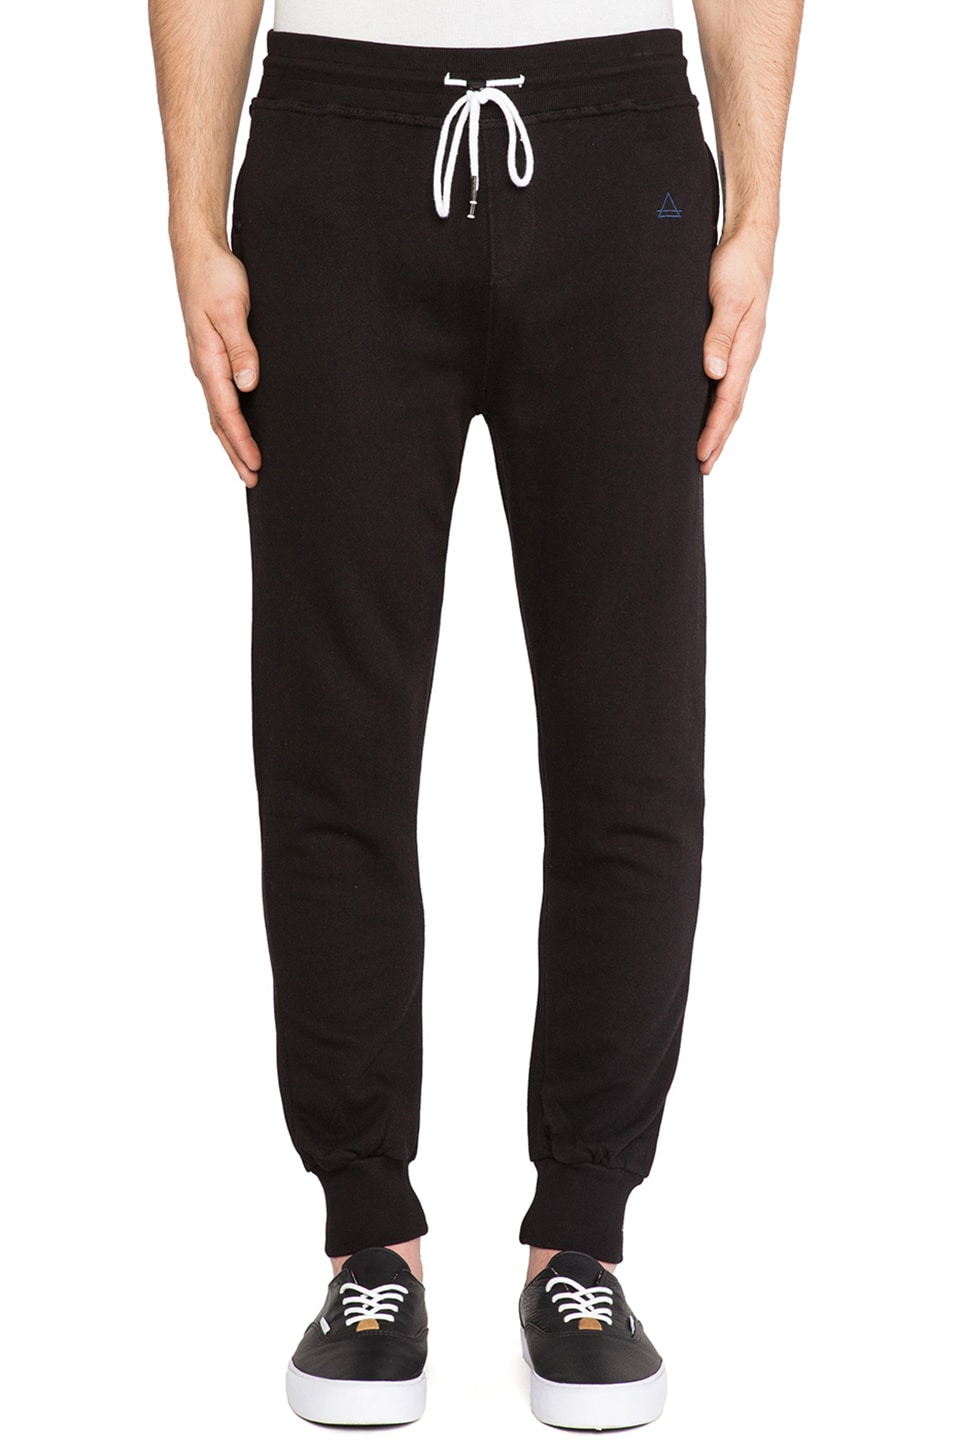 Eleven Paris Billy Sweatpant in Black